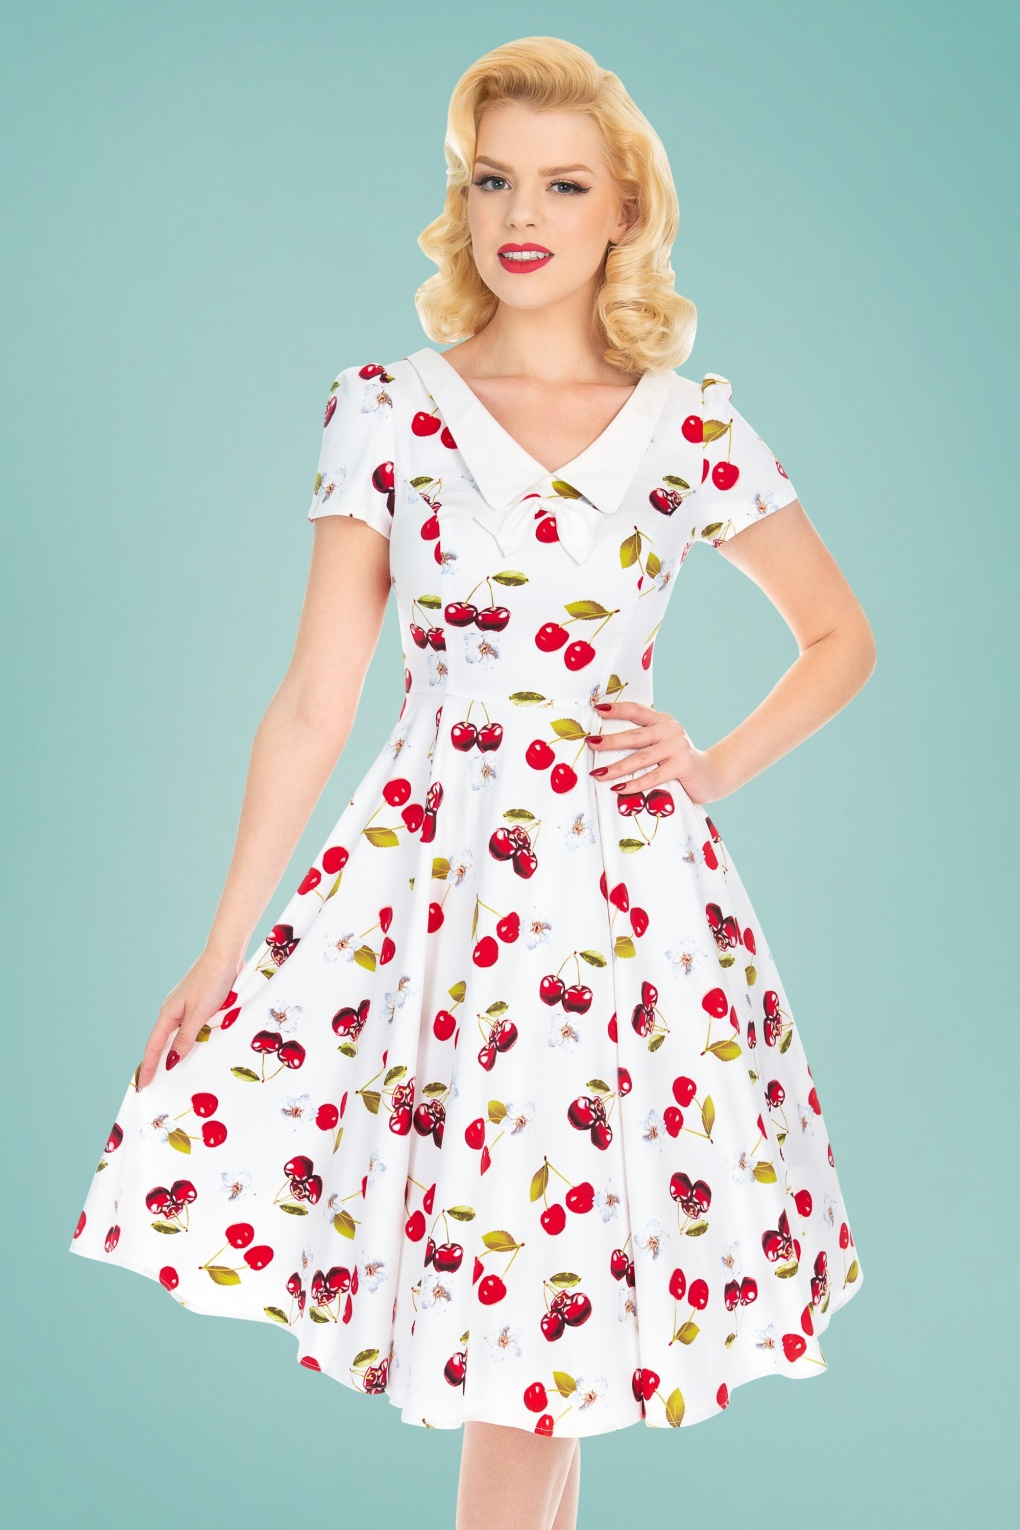 50 Vintage Inspired Clothing Stores 50s Cherry On Top Swing Dress in White £47.20 AT vintagedancer.com